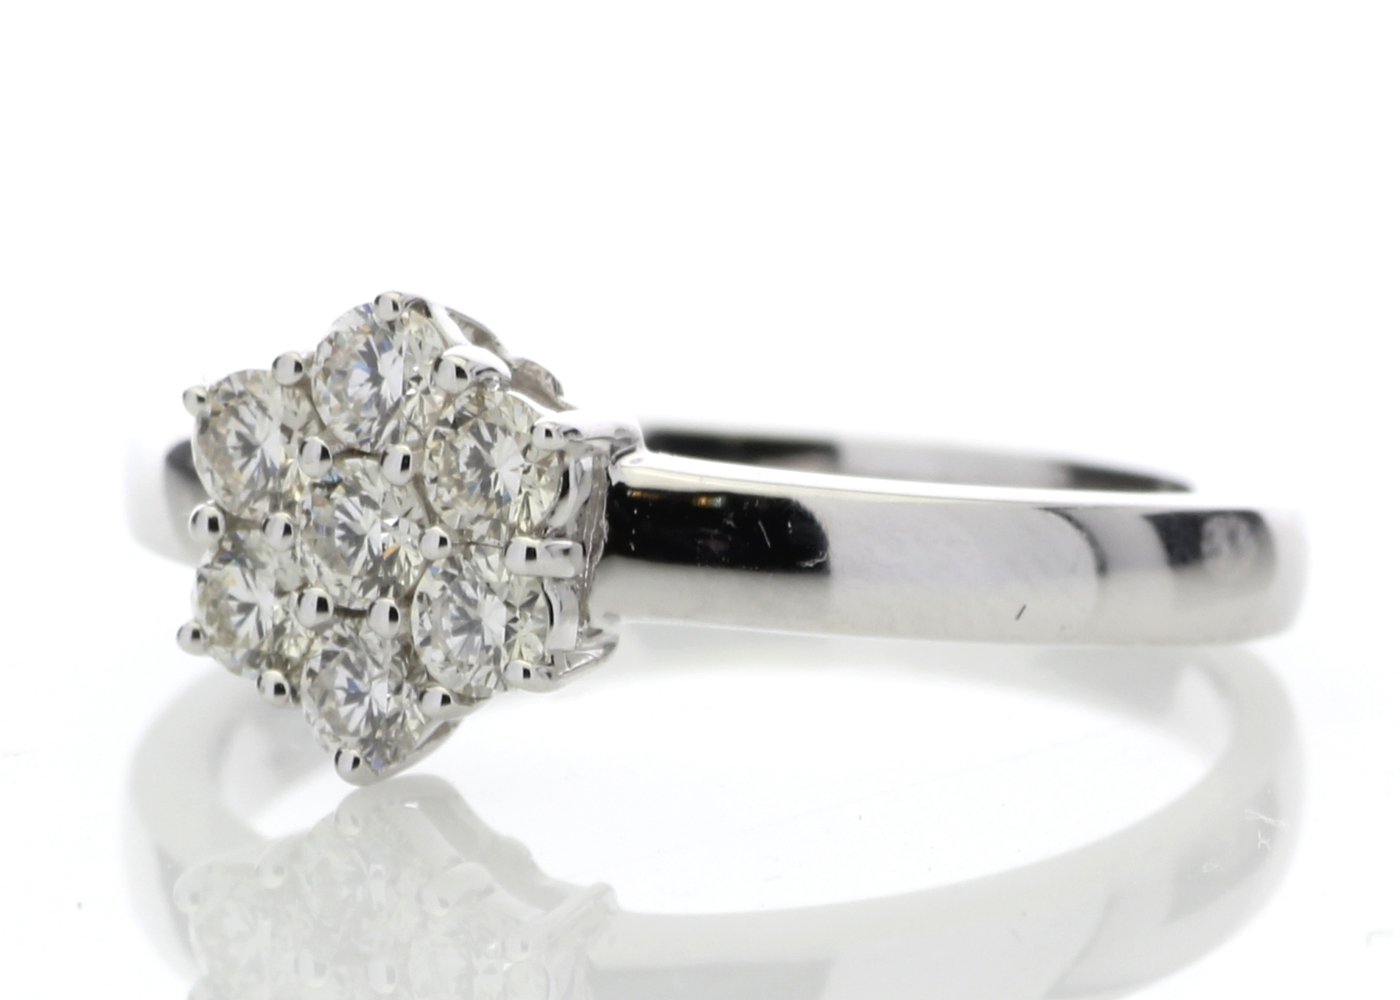 Lot 56 - 9ct White Gold Diamond Cluster Ring 0.45 Carats